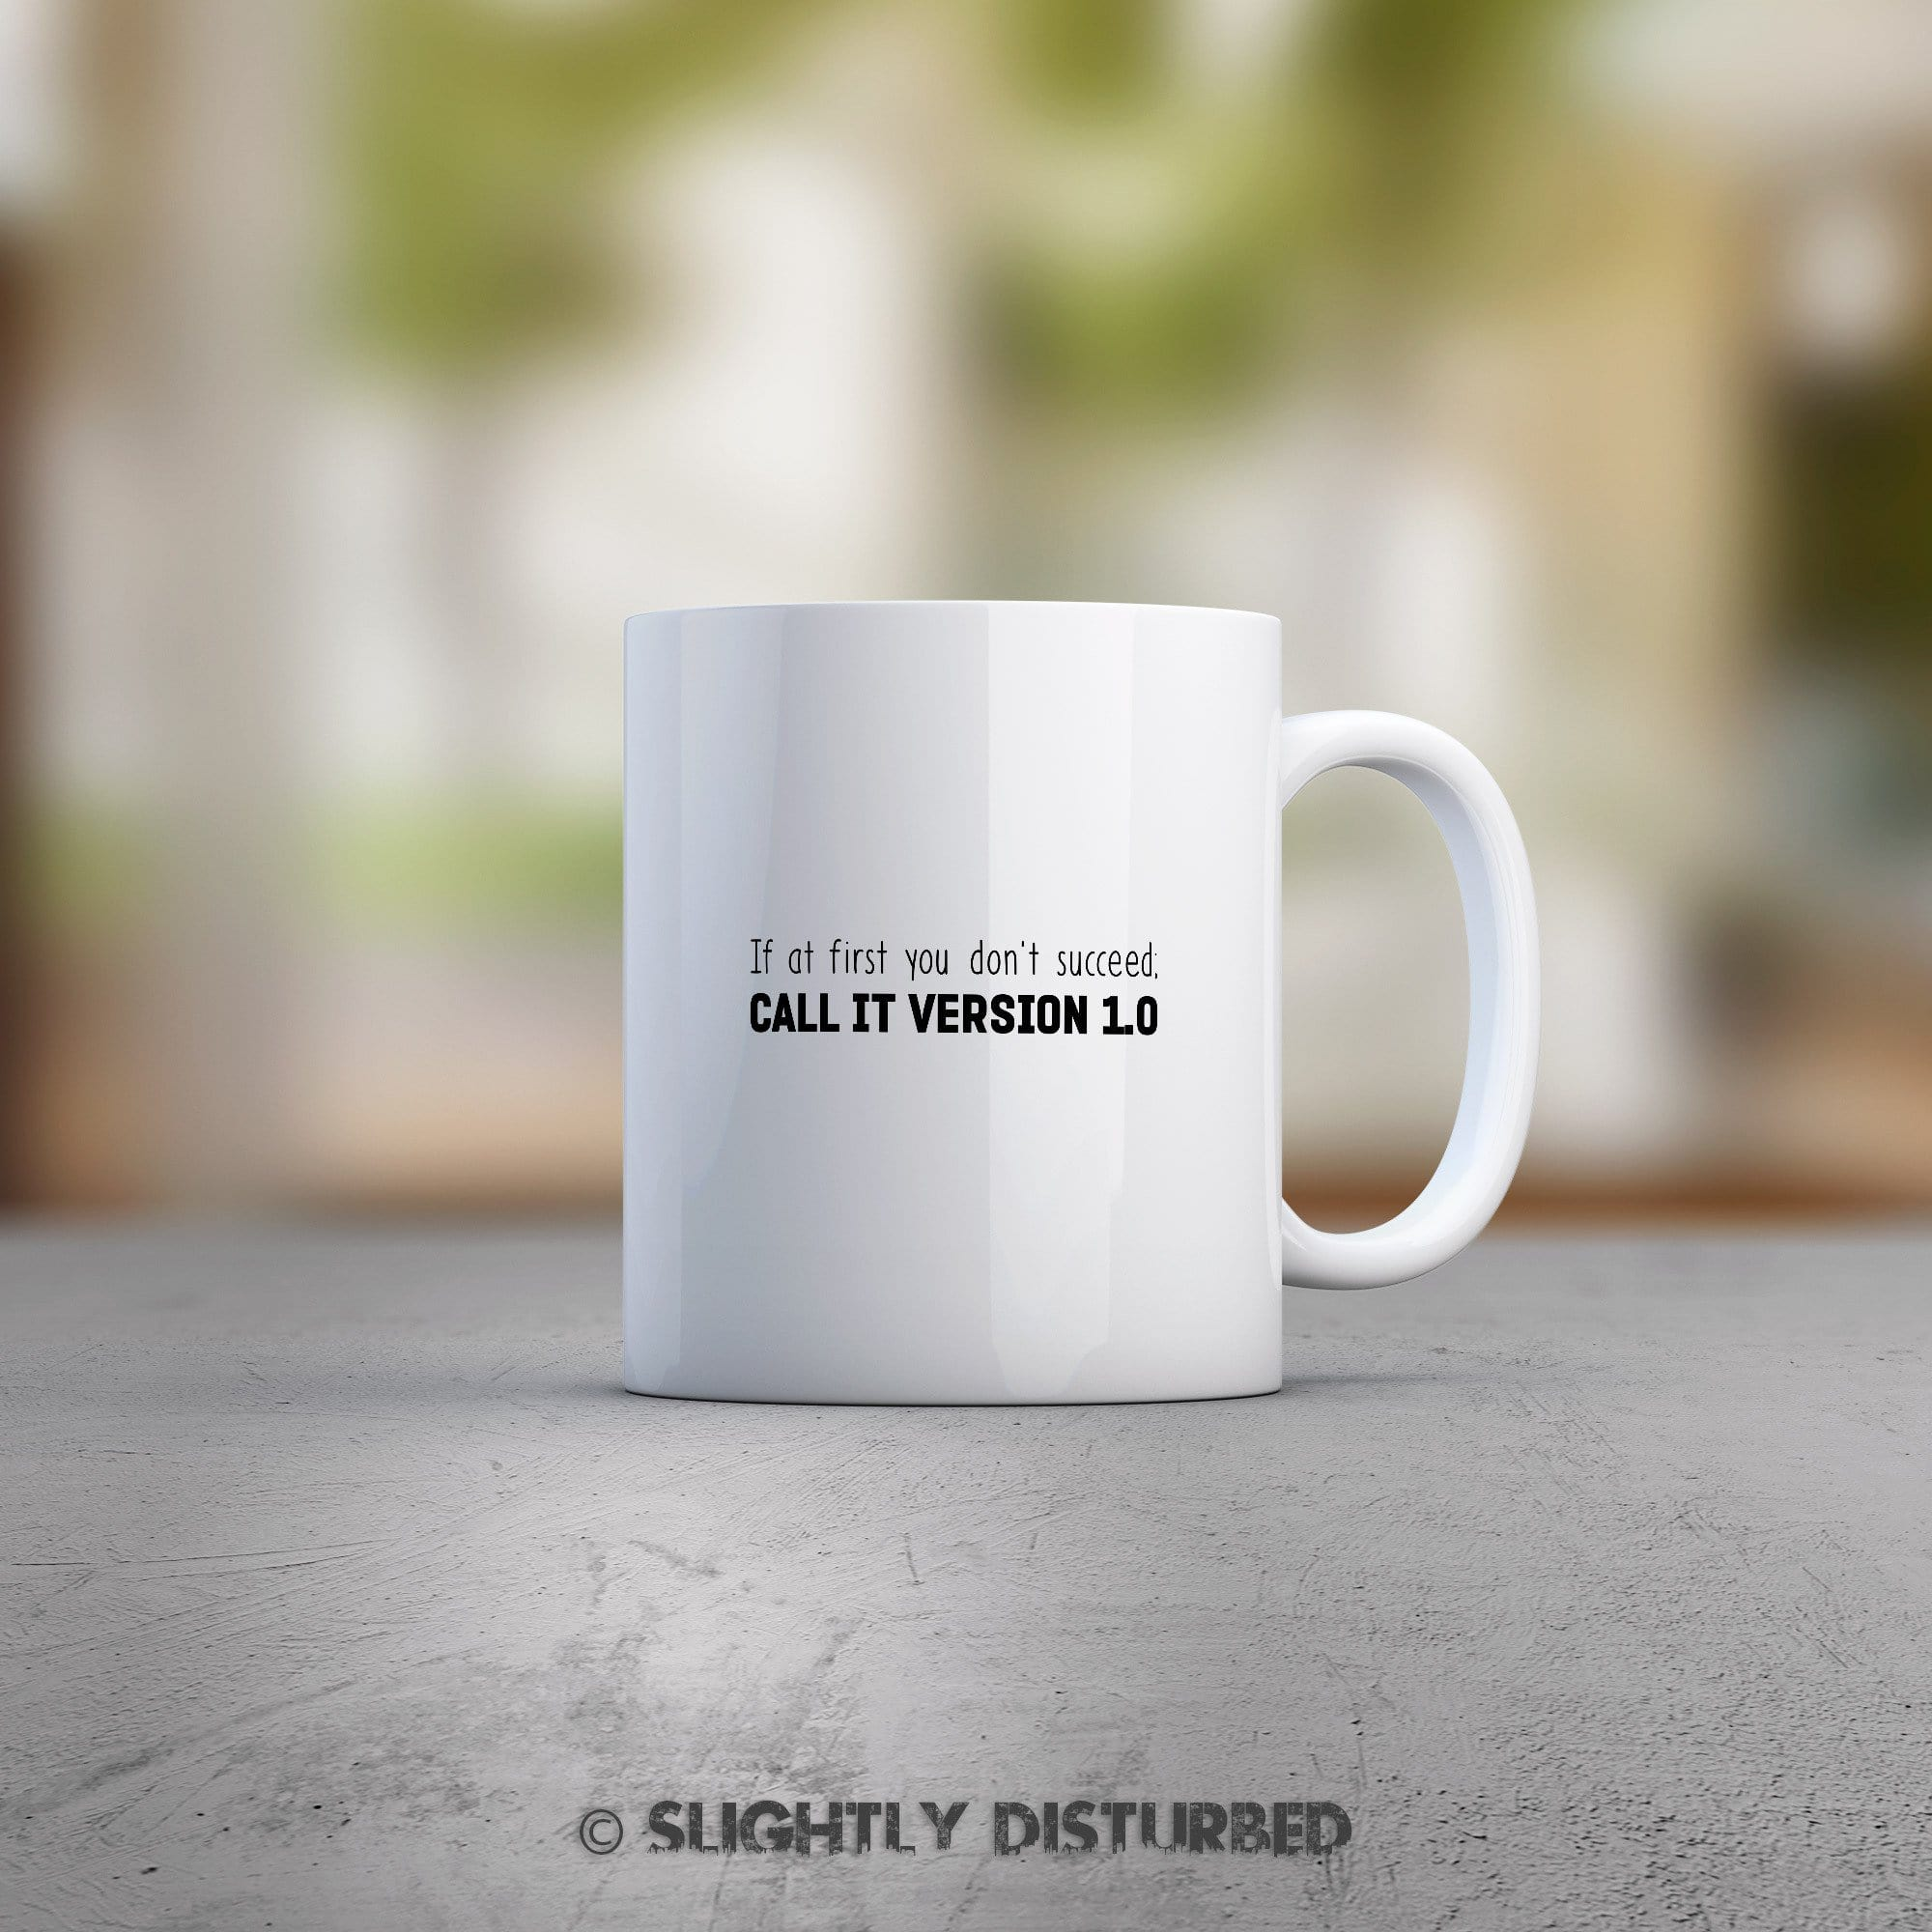 If At First You Don't Succeed; Call It Version 1 - Geeky Gift Mug - Slightly Disturbed